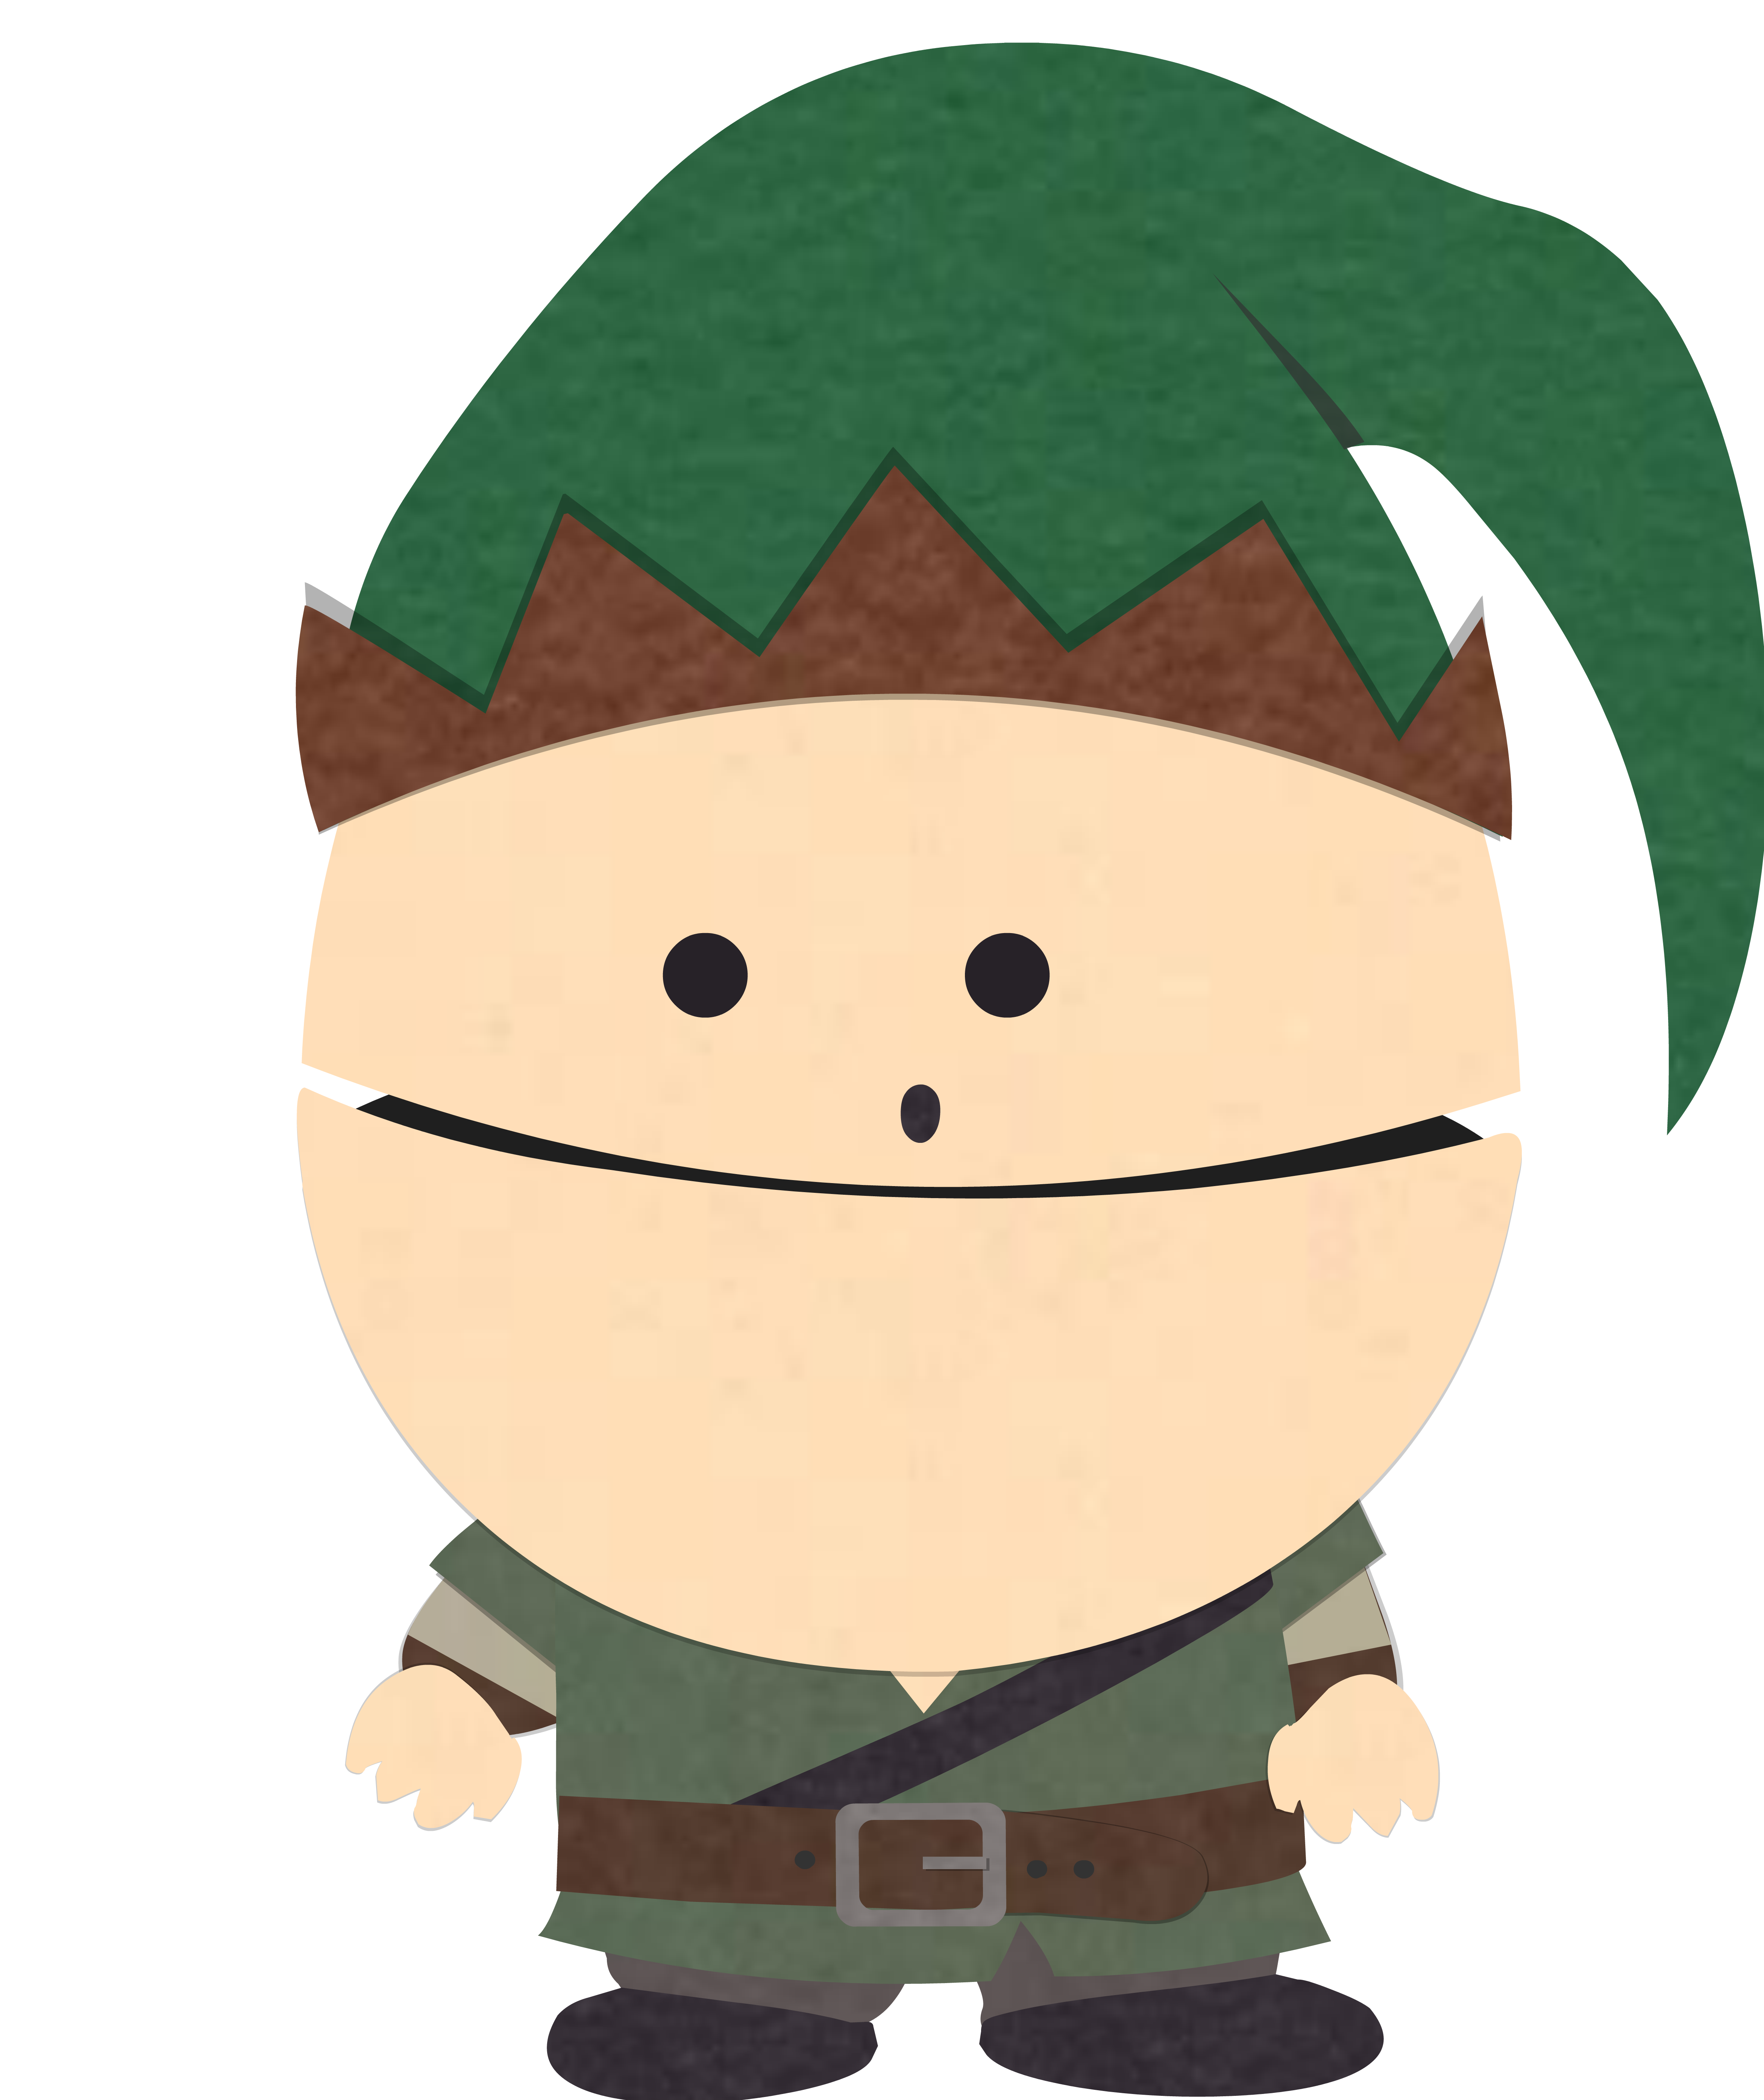 Ike Broflovski South Park Archives Fandom Ask anything you want to learn about marcus parks by getting answers on askfm. south park archives fandom